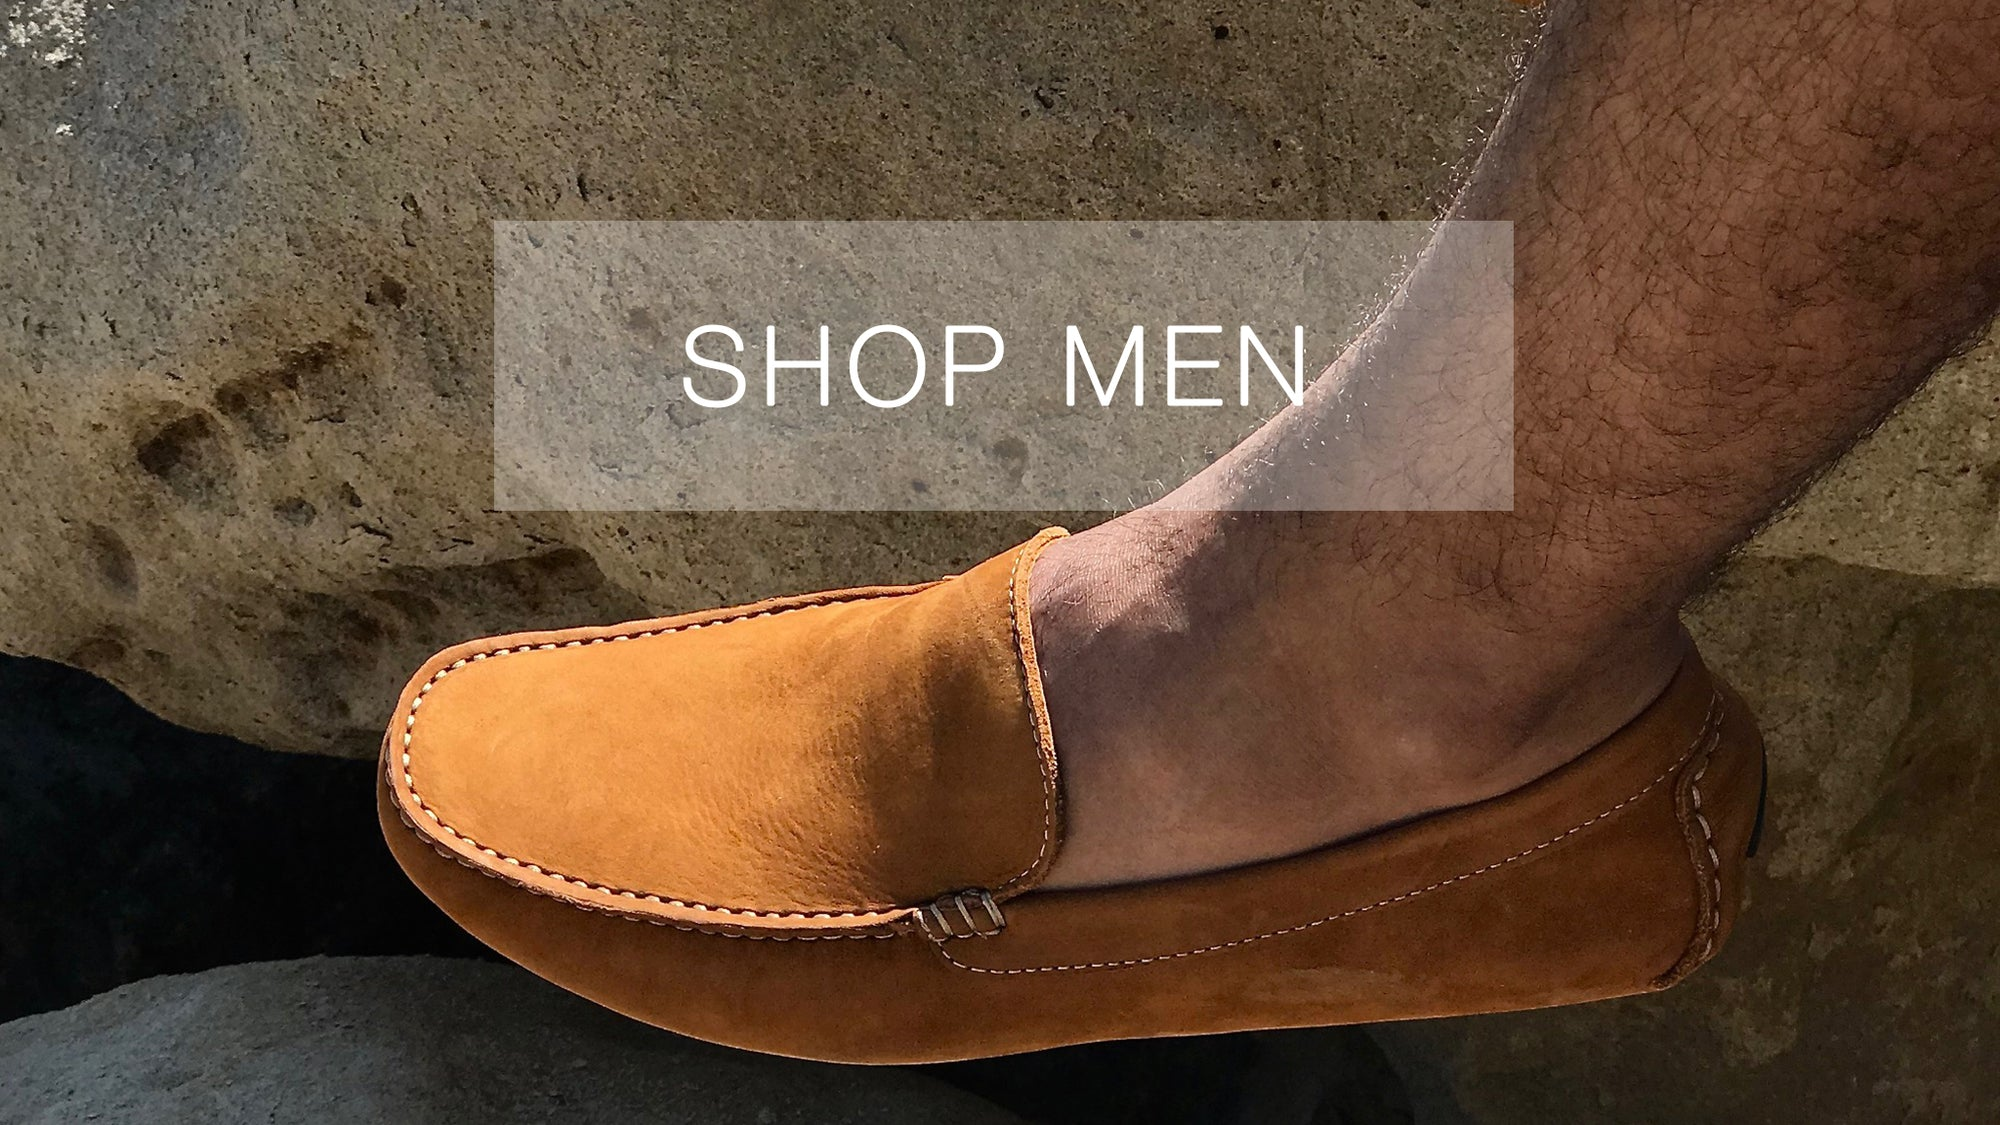 Loafers men, driving loafers men, men shoes, men summer shoes, men leather shoes, leather shoes, men moccasins